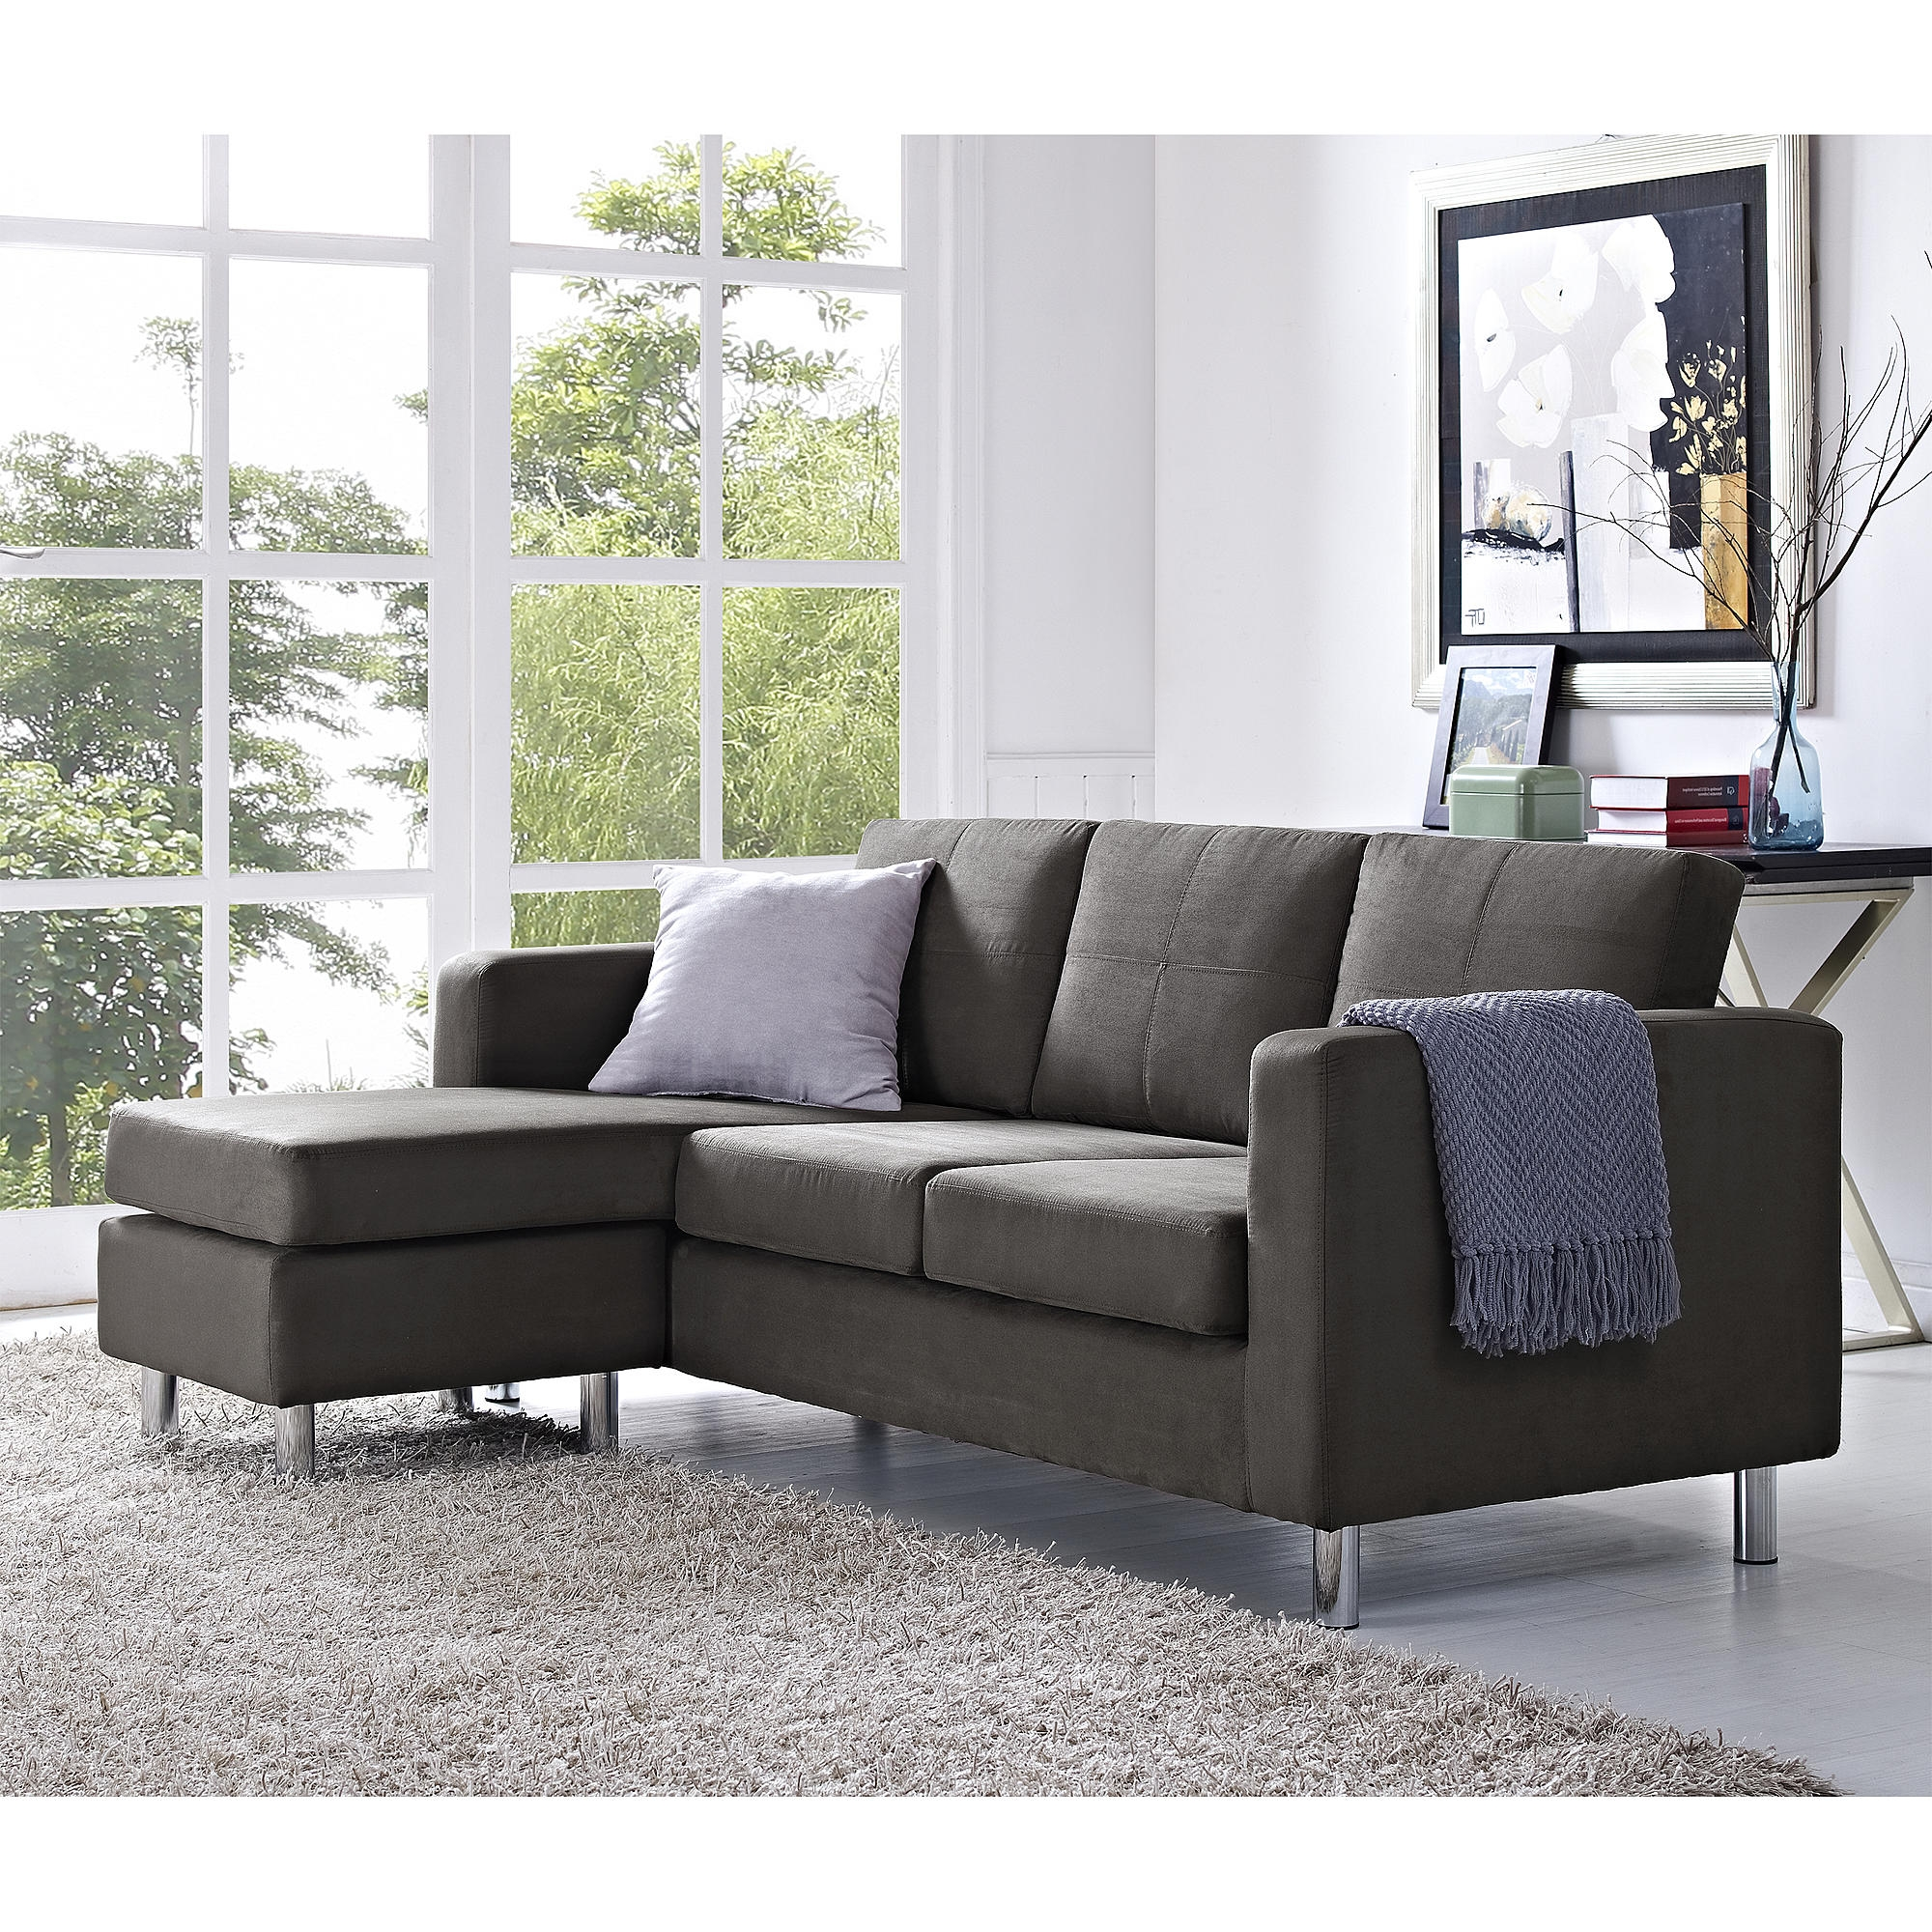 Small Spaces Configurable Sectional Sofa Dorel Home Furnishings With Durable Sectional Sofa (#10 of 12)